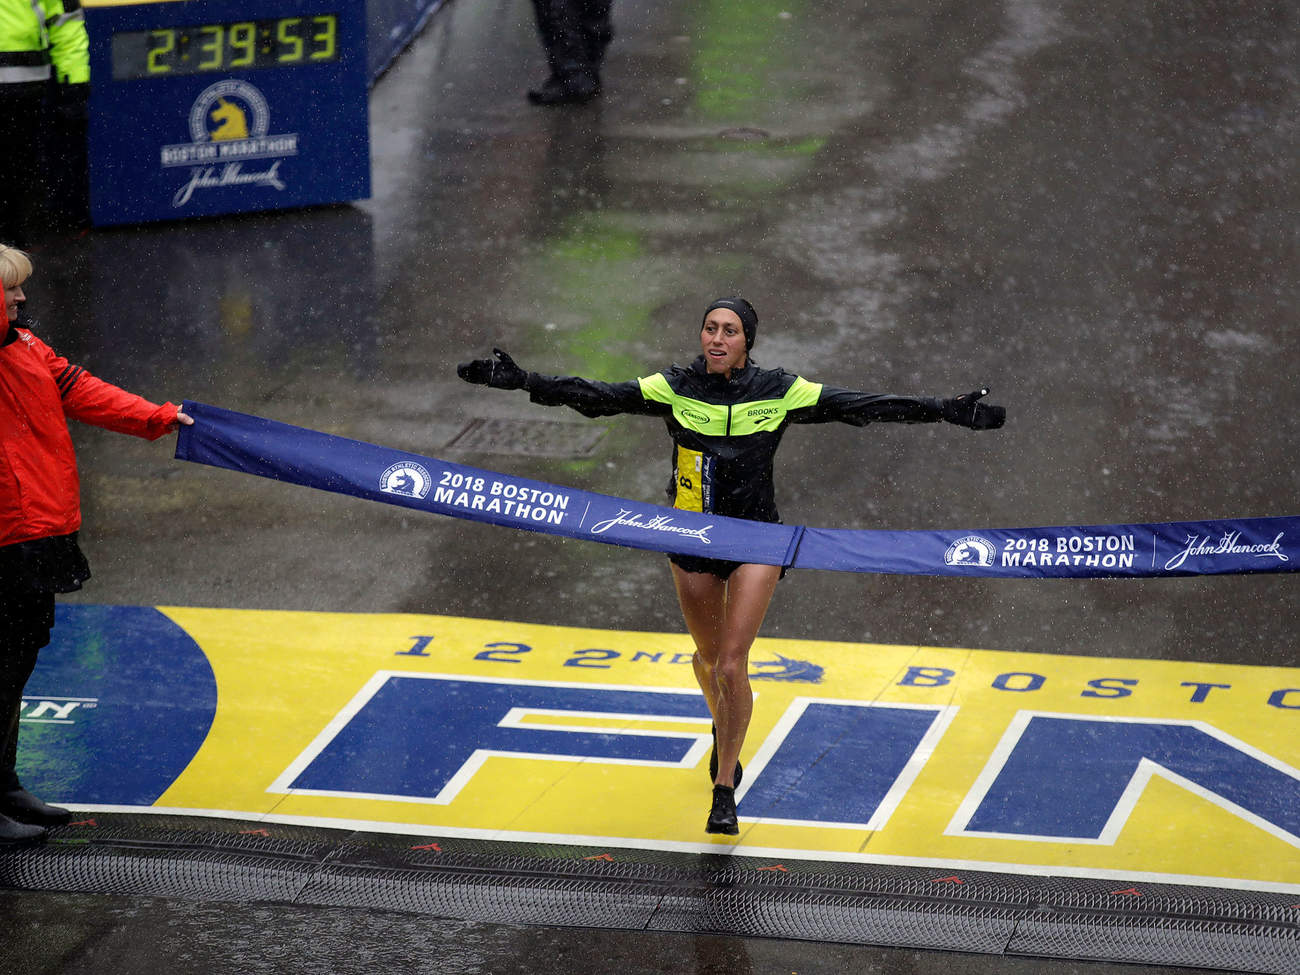 Desiree Linden wins 2018 Boston Marathon